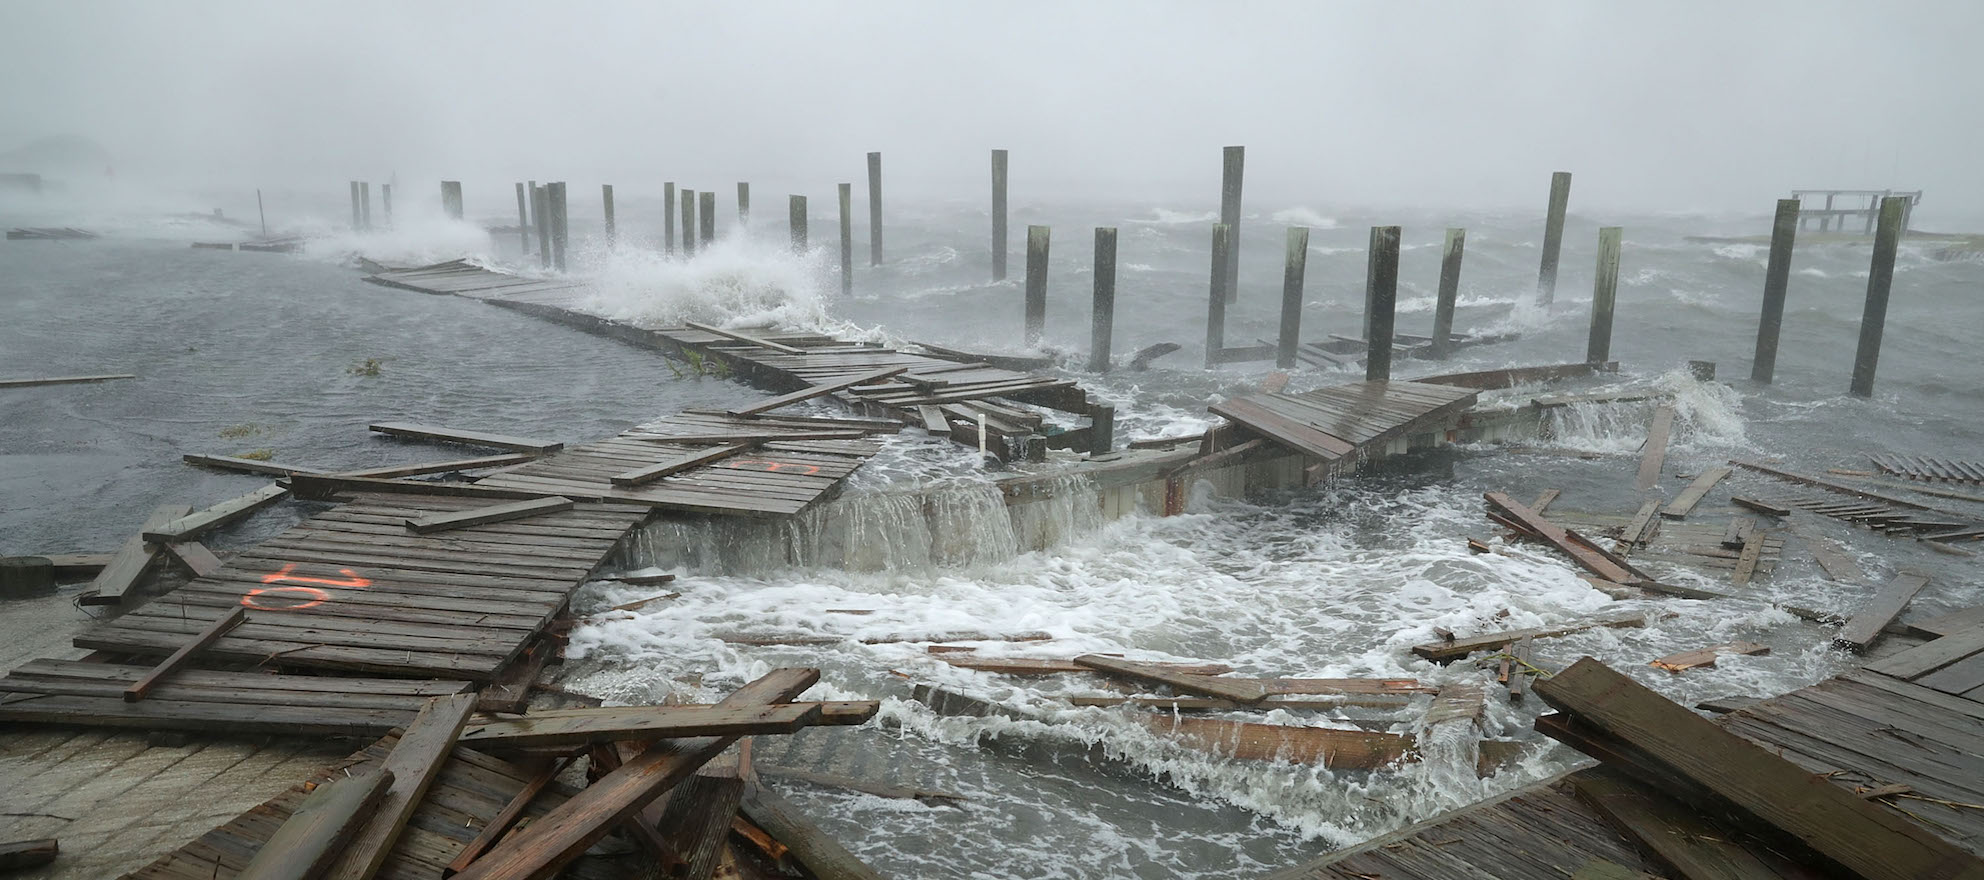 Hurricane Florence is aimed at $1T worth of real estate